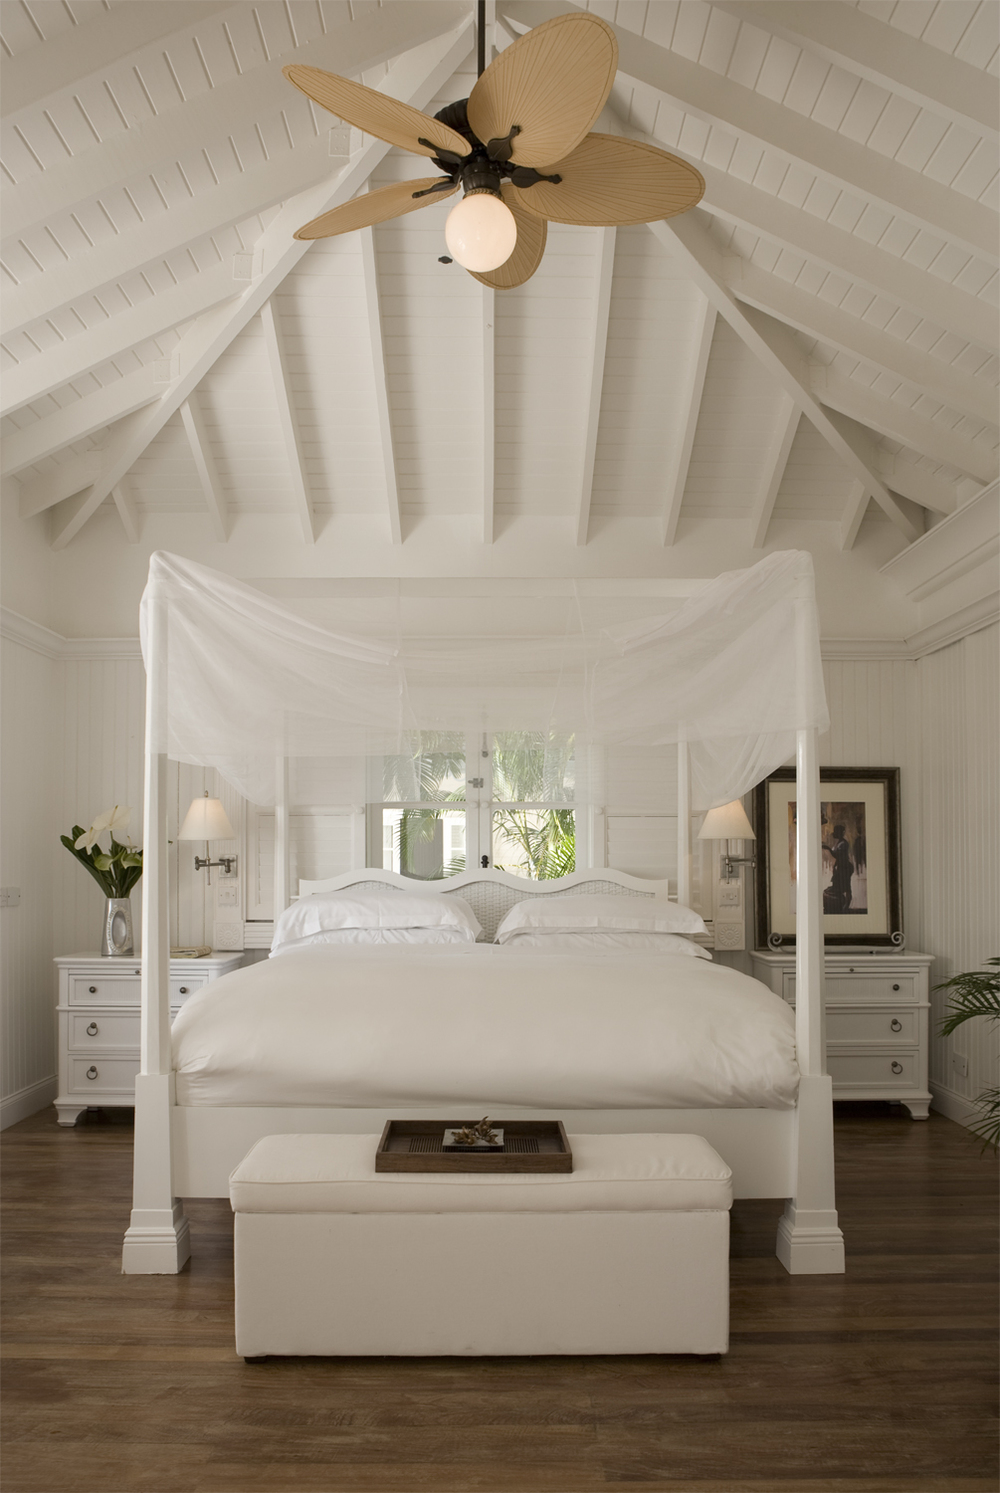 08 - HIGH-RES-Luxury Villa Bedroom.jpg